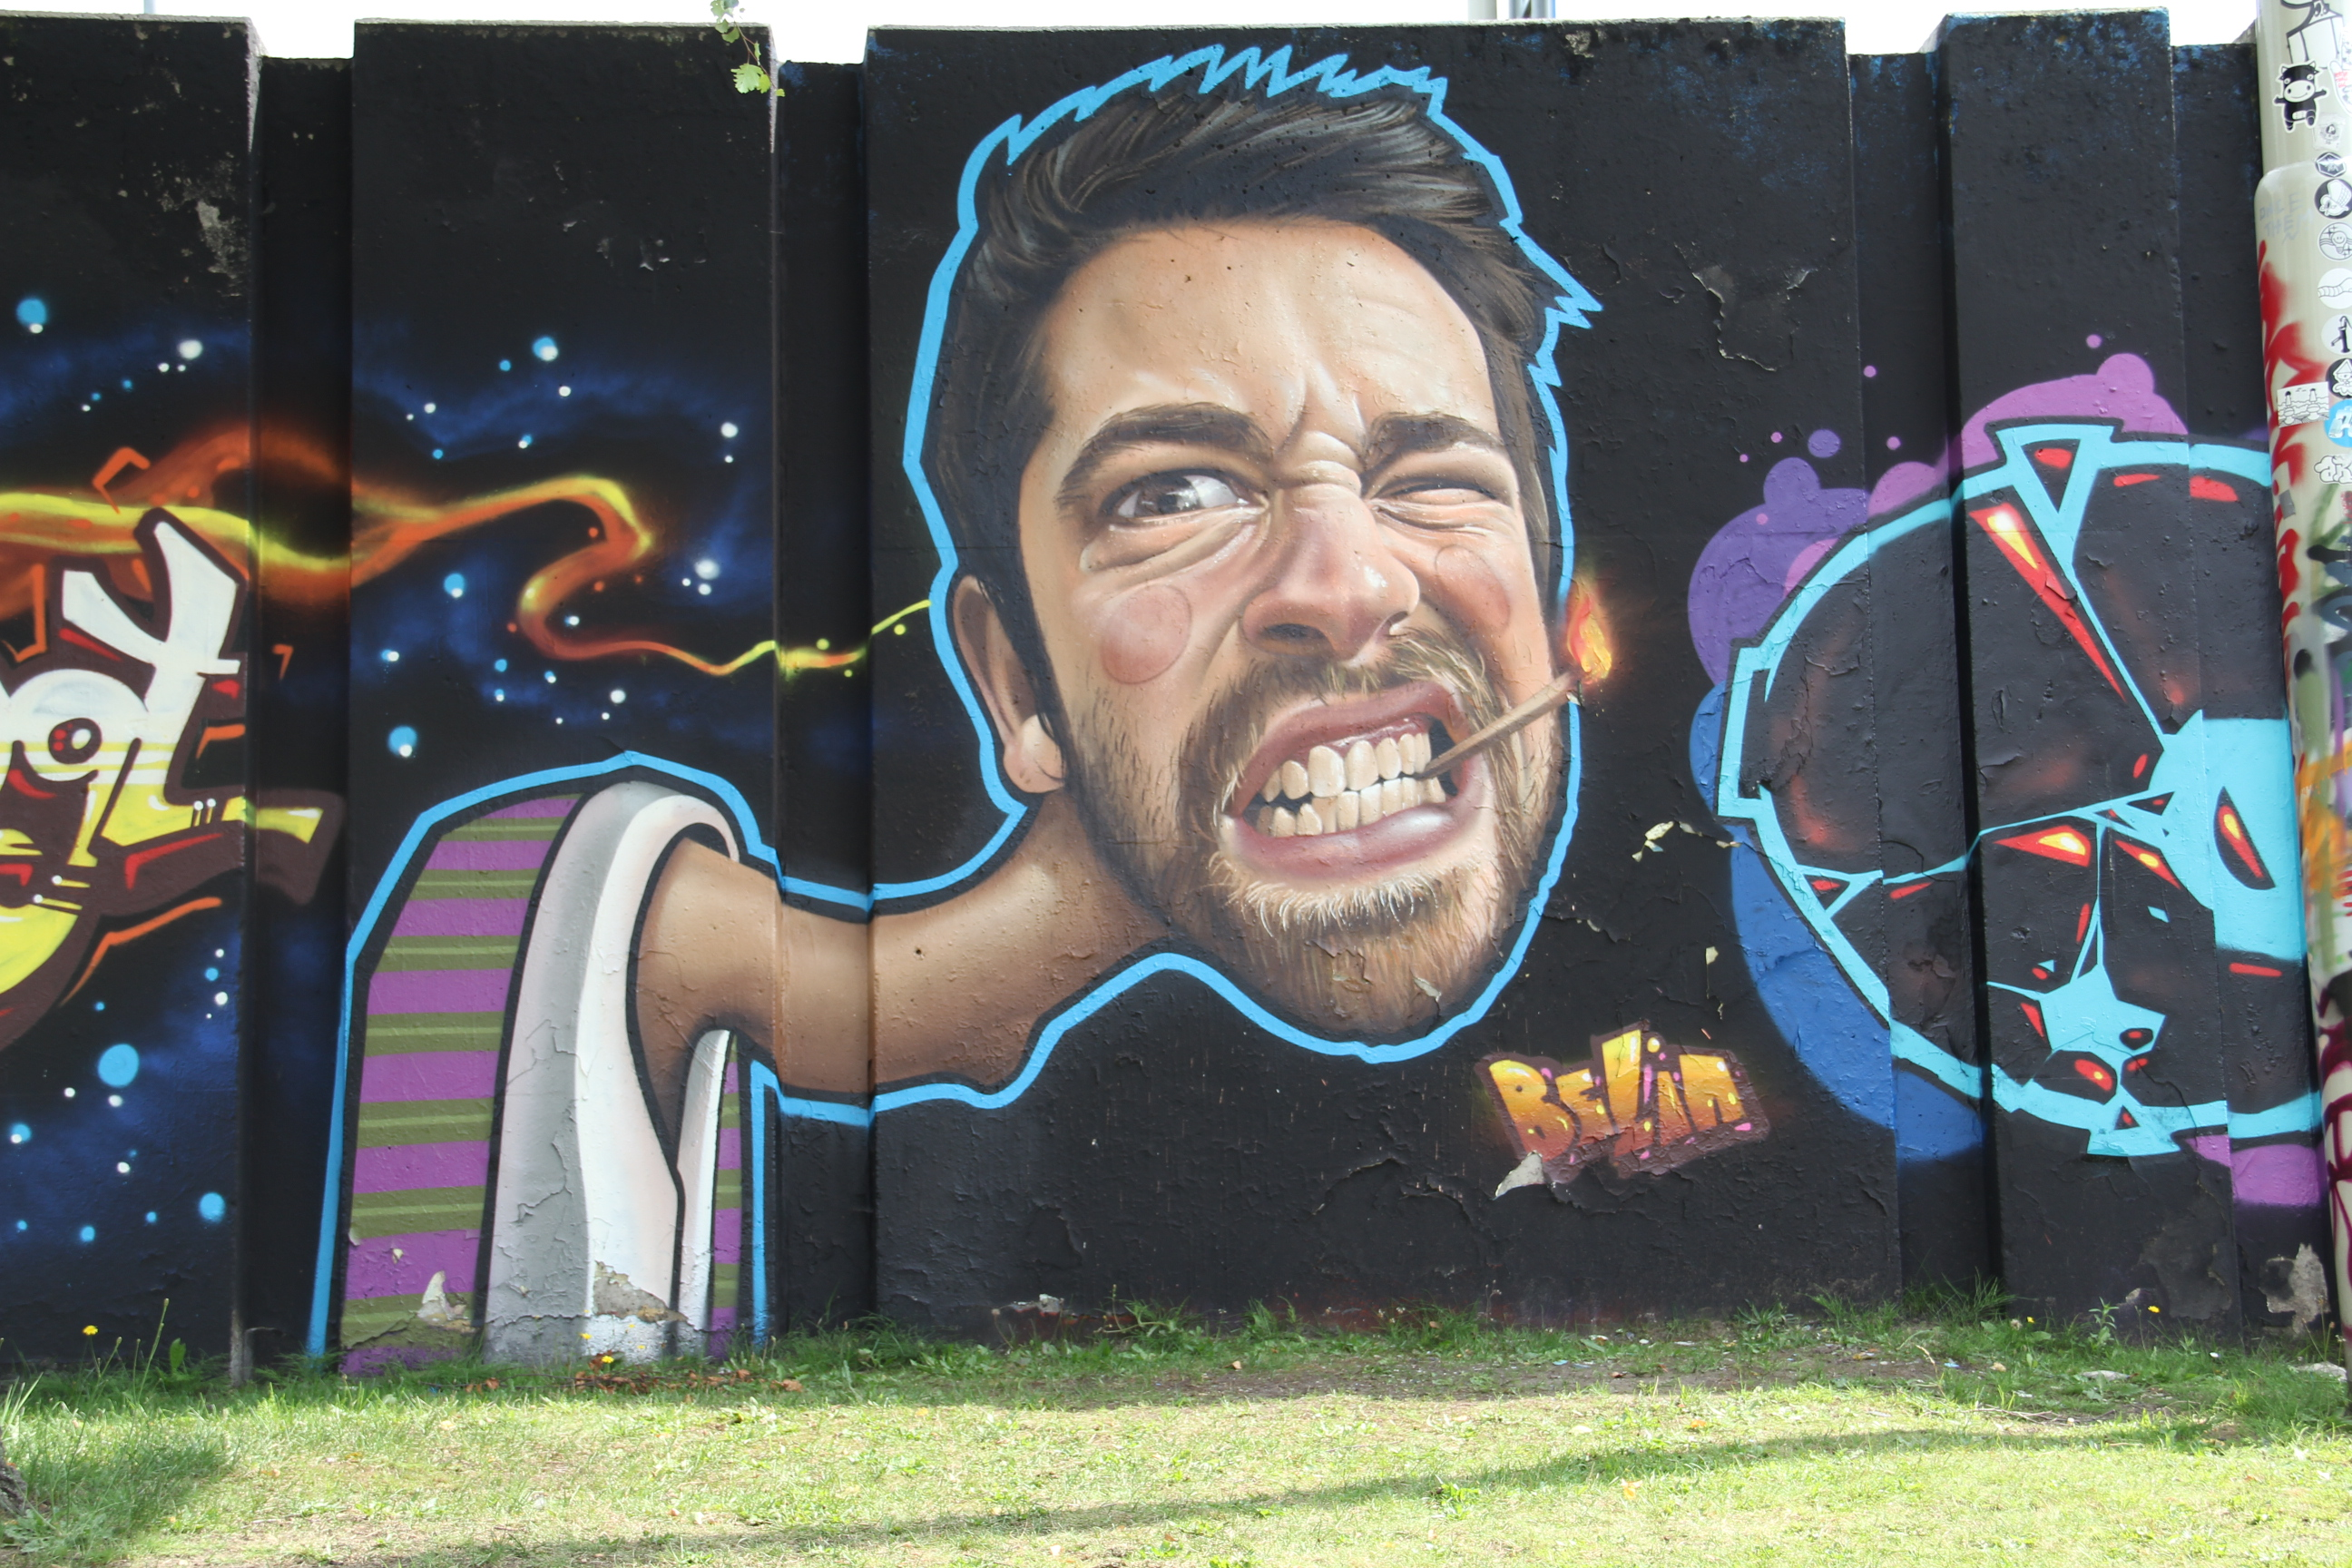 Every Year, Graffiti Artists Turns A Holland Traffic Circle Into Amazing Legal Art Murals